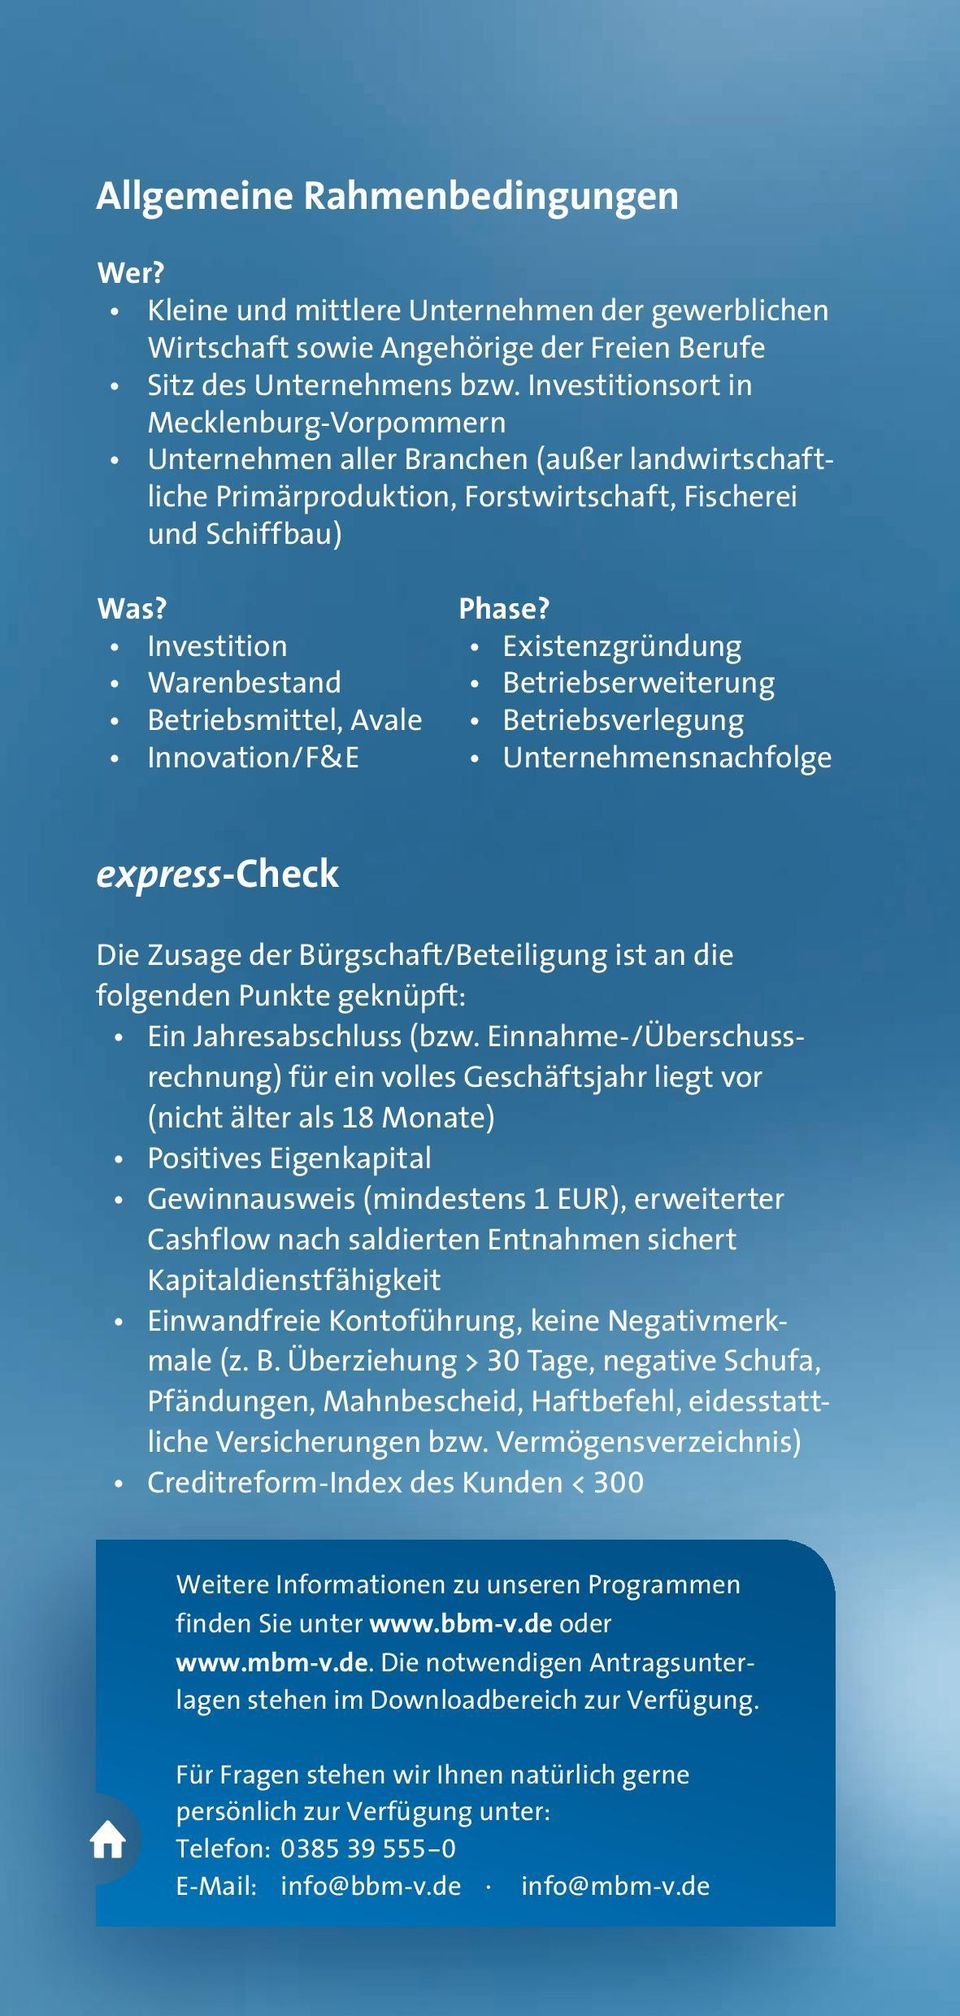 Investition Warenbestand Betriebsmittel, Avale Innovation/F&E Phase?